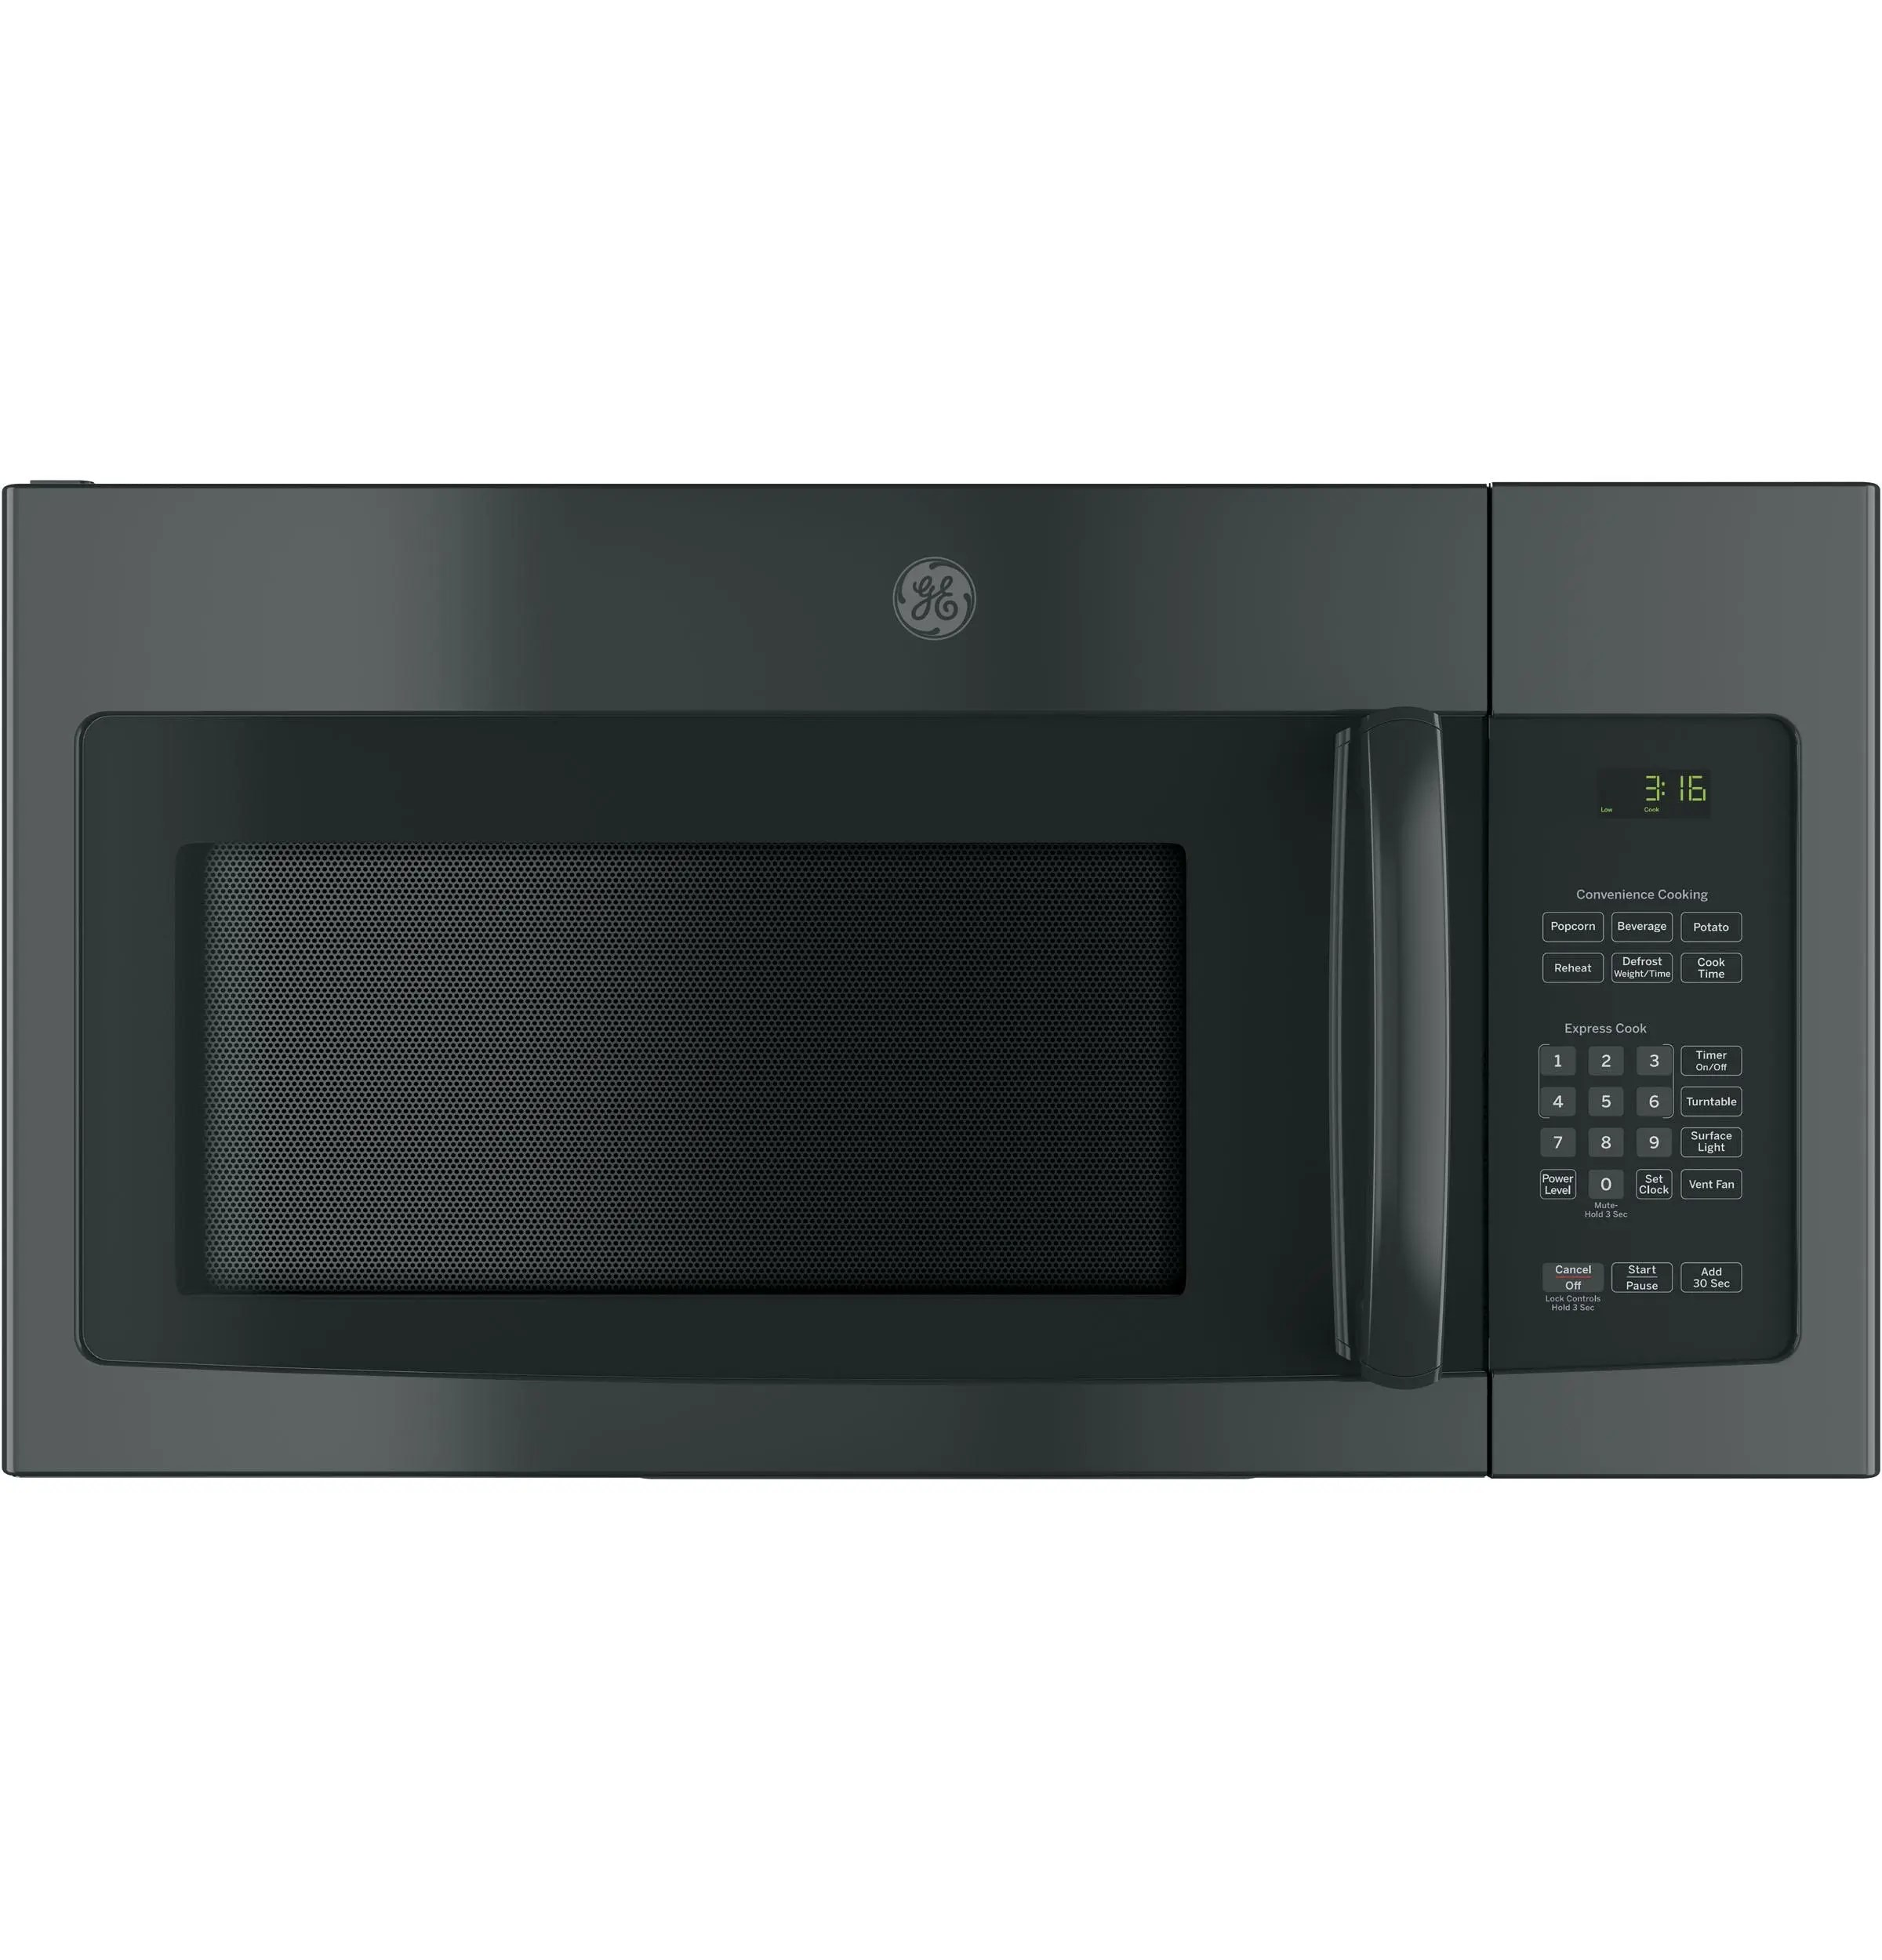 https www hahnappliance com cooking microwaves over the range microwaves jnm3163djww